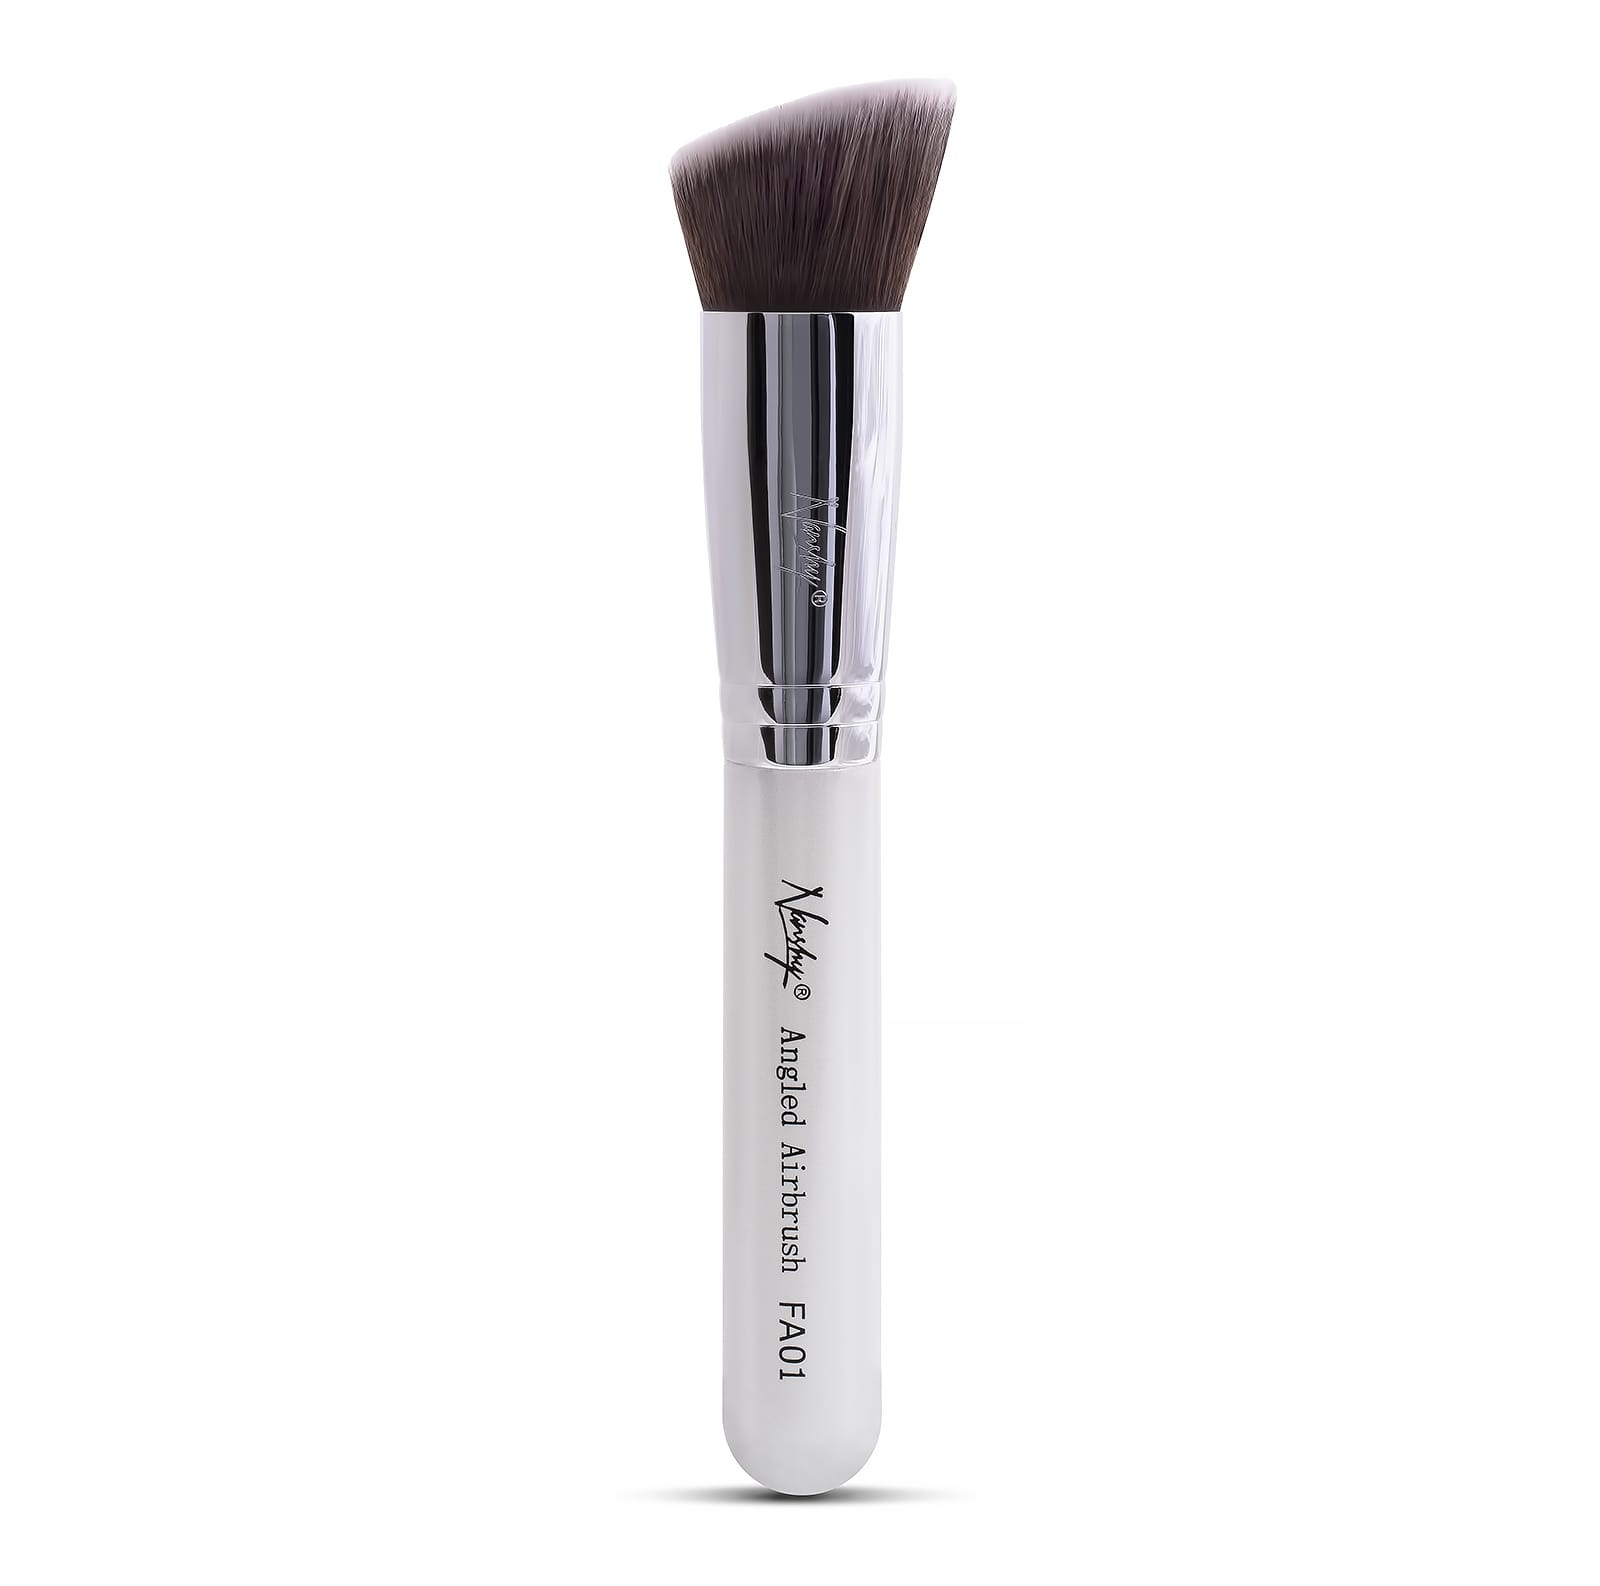 Nanshy Nanshy Angled Airbrush FA01 | Face Makeup Brush